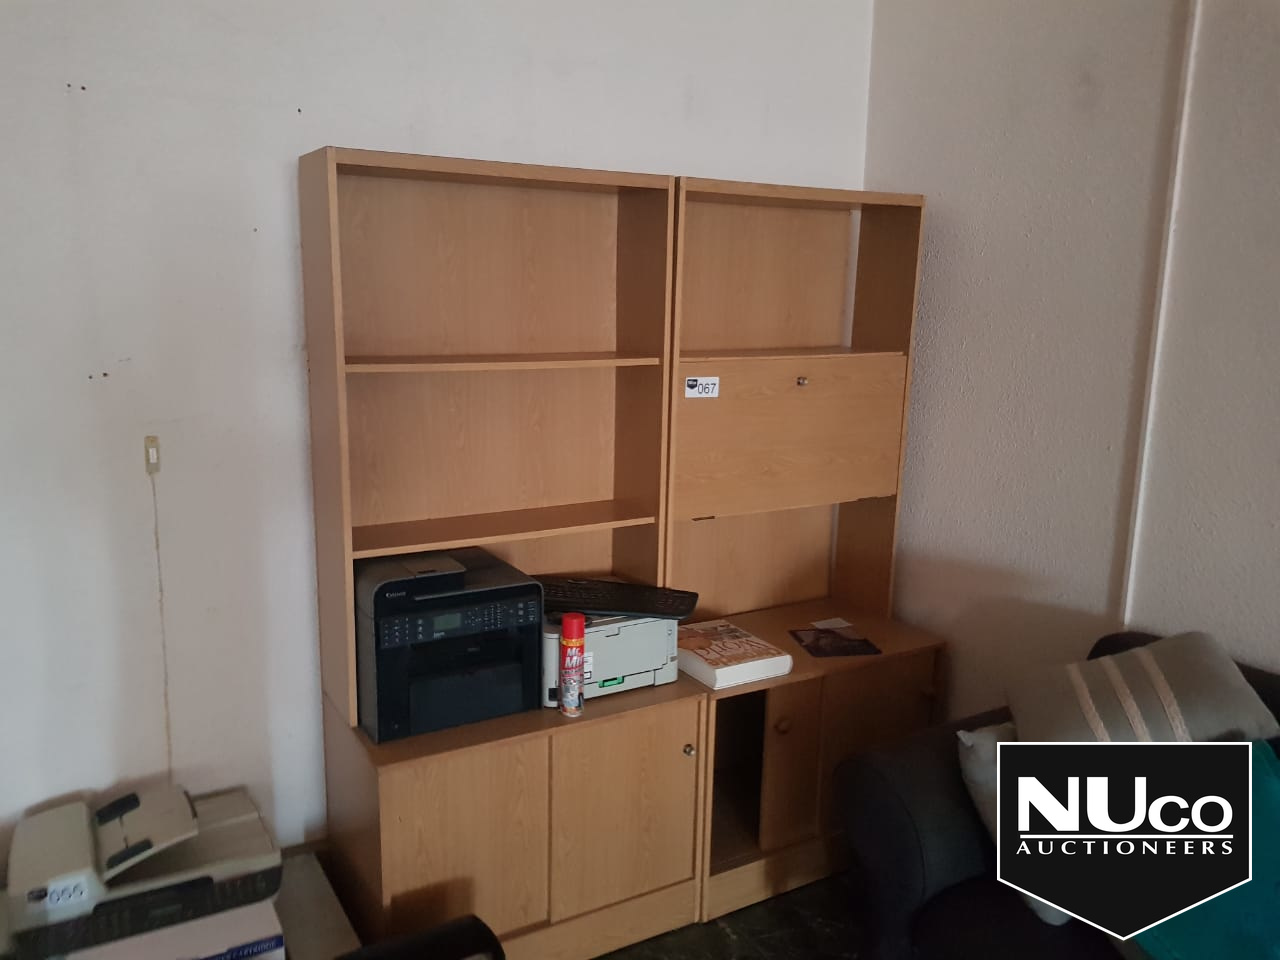 SHELVING CABINET | Nuco Auctioneers